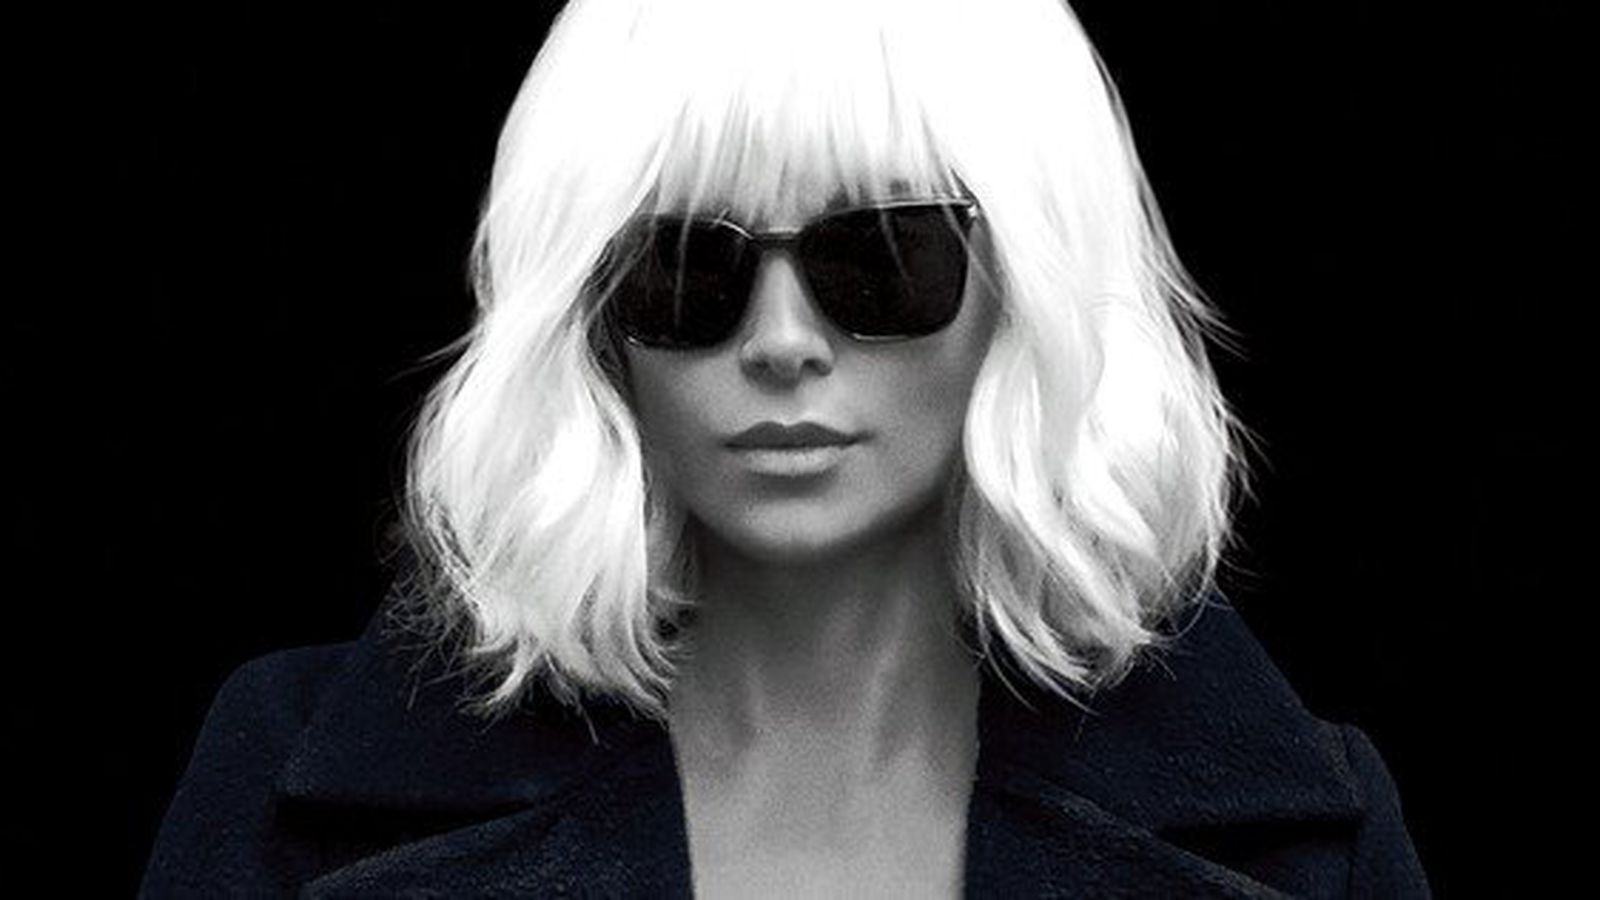 Atomic Blonde S Trailer Shows Charlize Theron Going Full John Wick The Verge